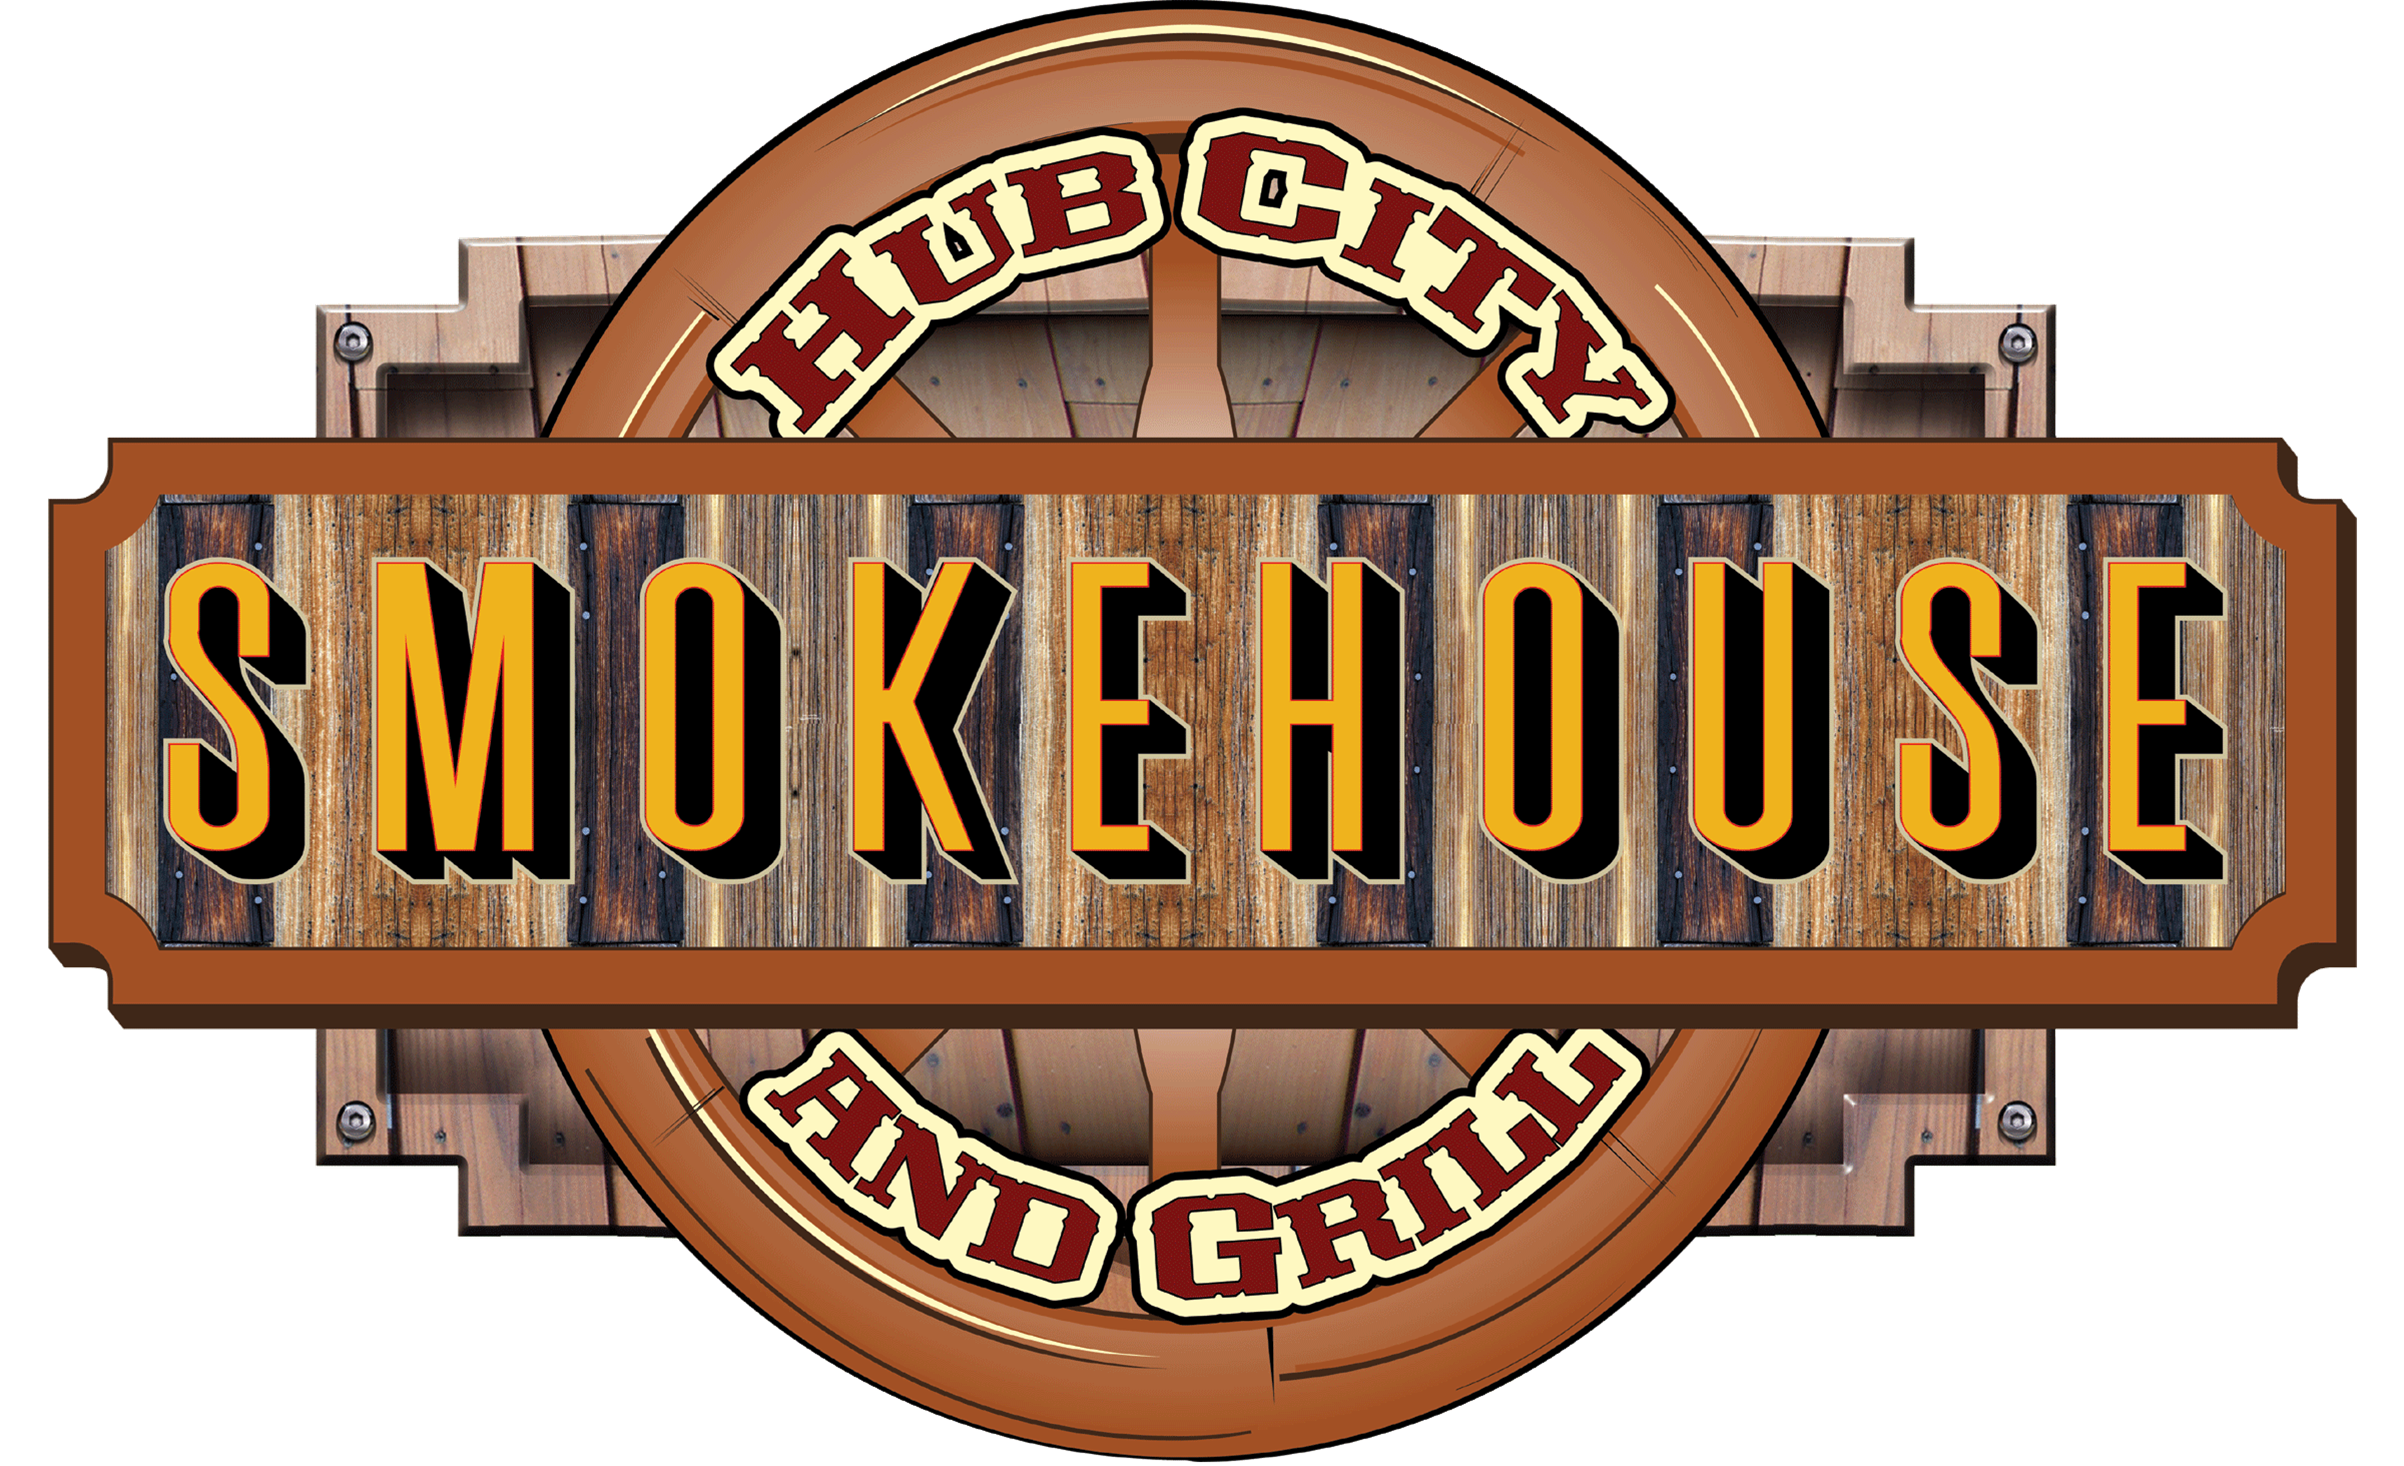 Hub City Smokehouse & Grill